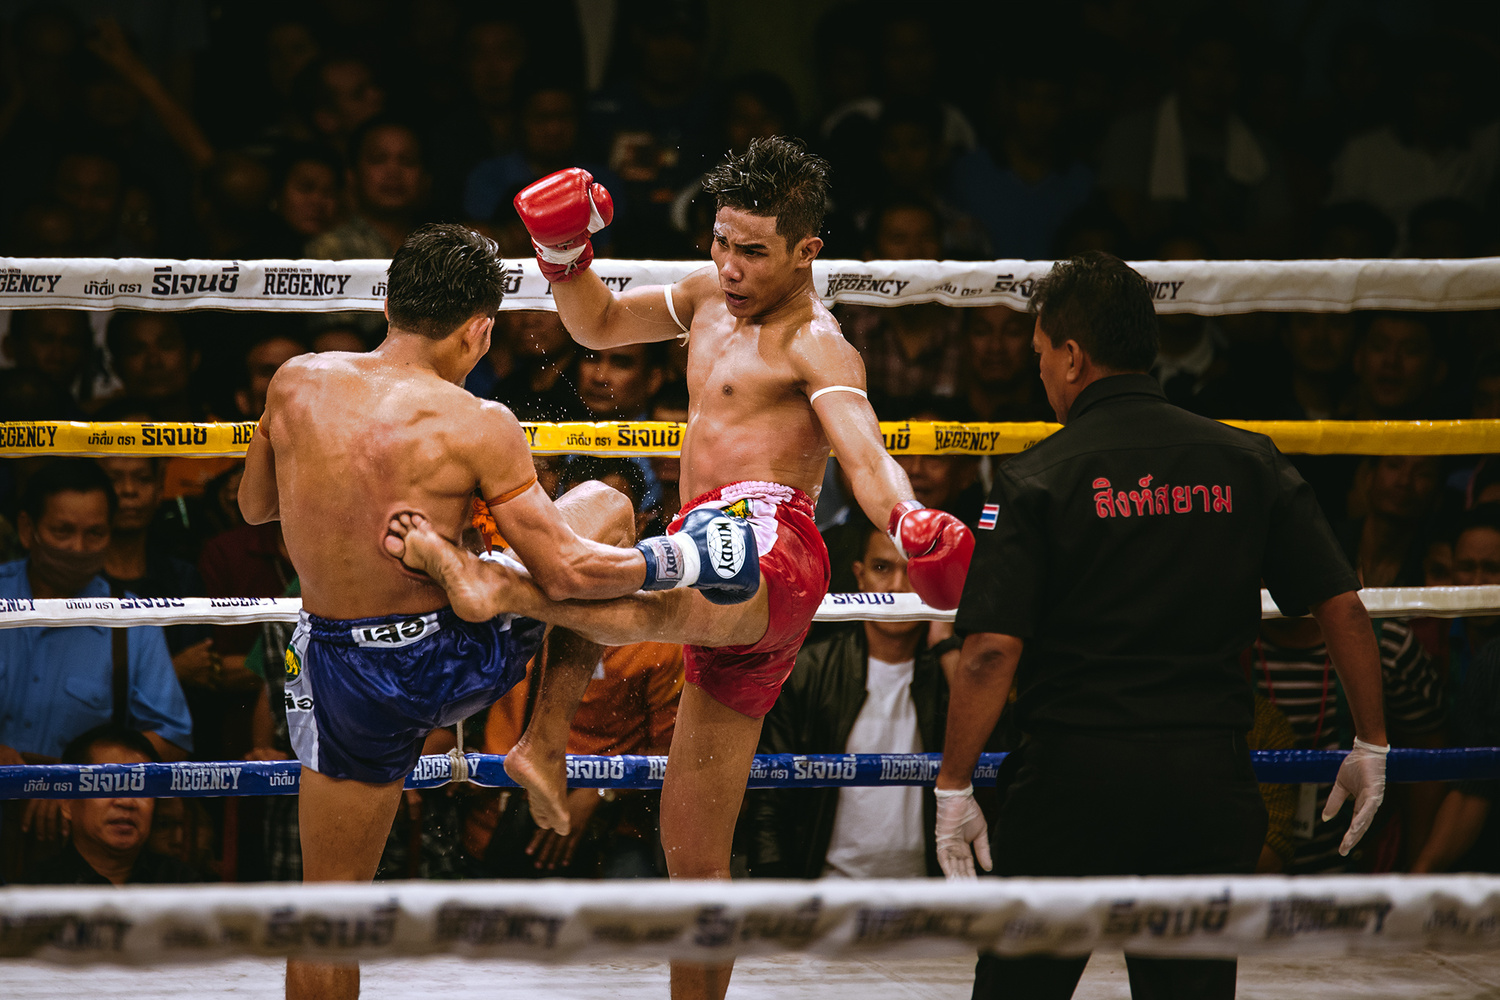 Muay Thai by Marek Stefech